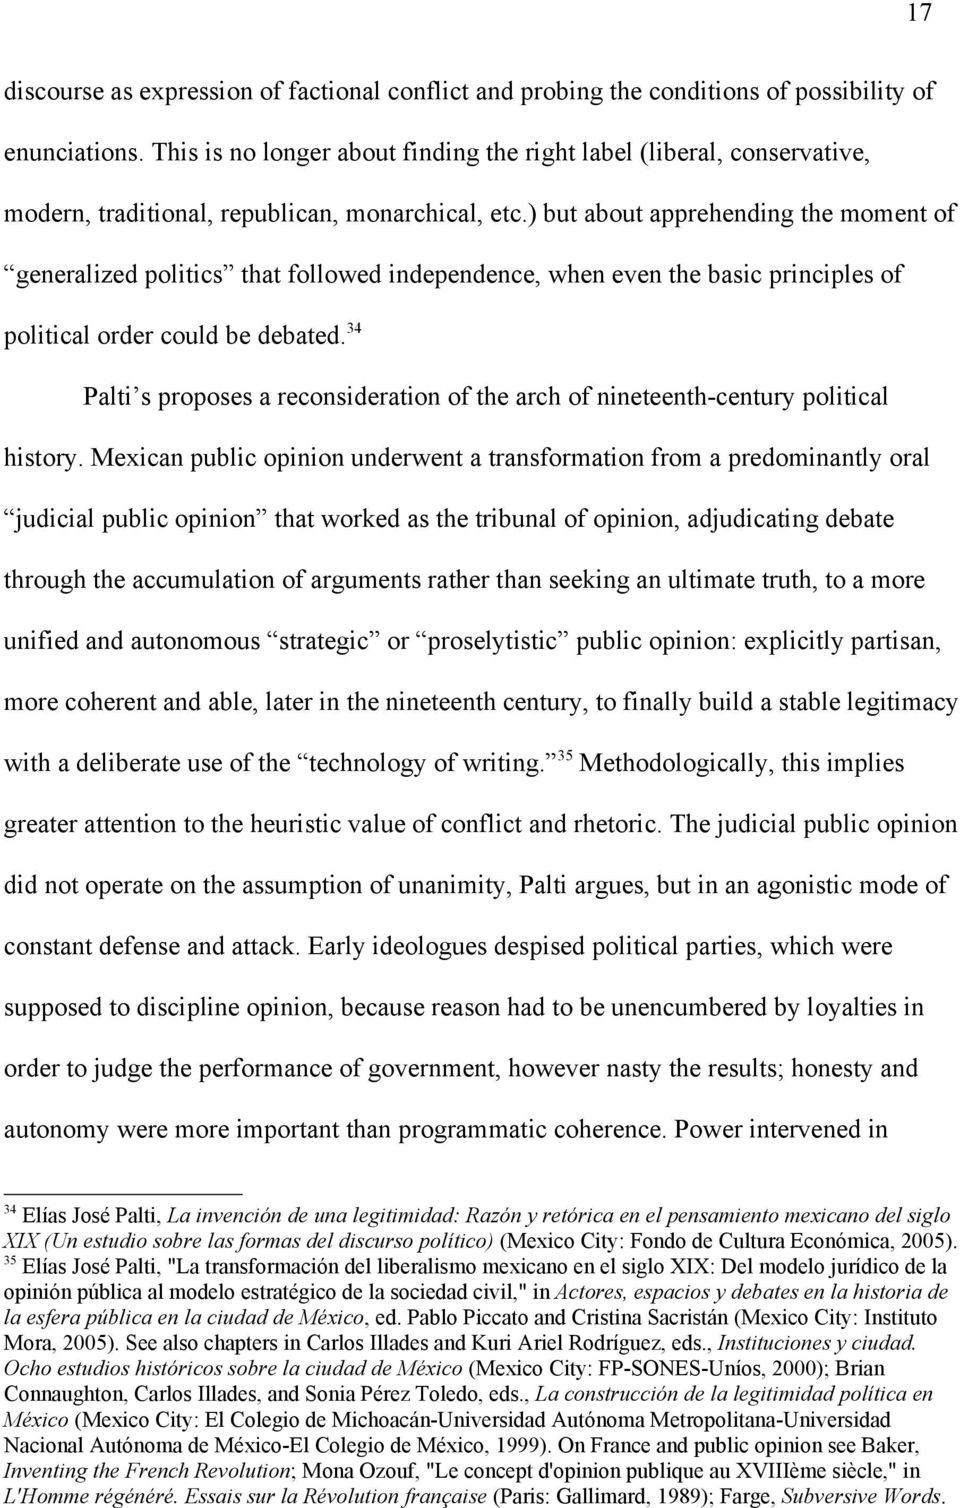 ) but about apprehending the moment of generalized politics that followed independence, when even the basic principles of political order could be debated.